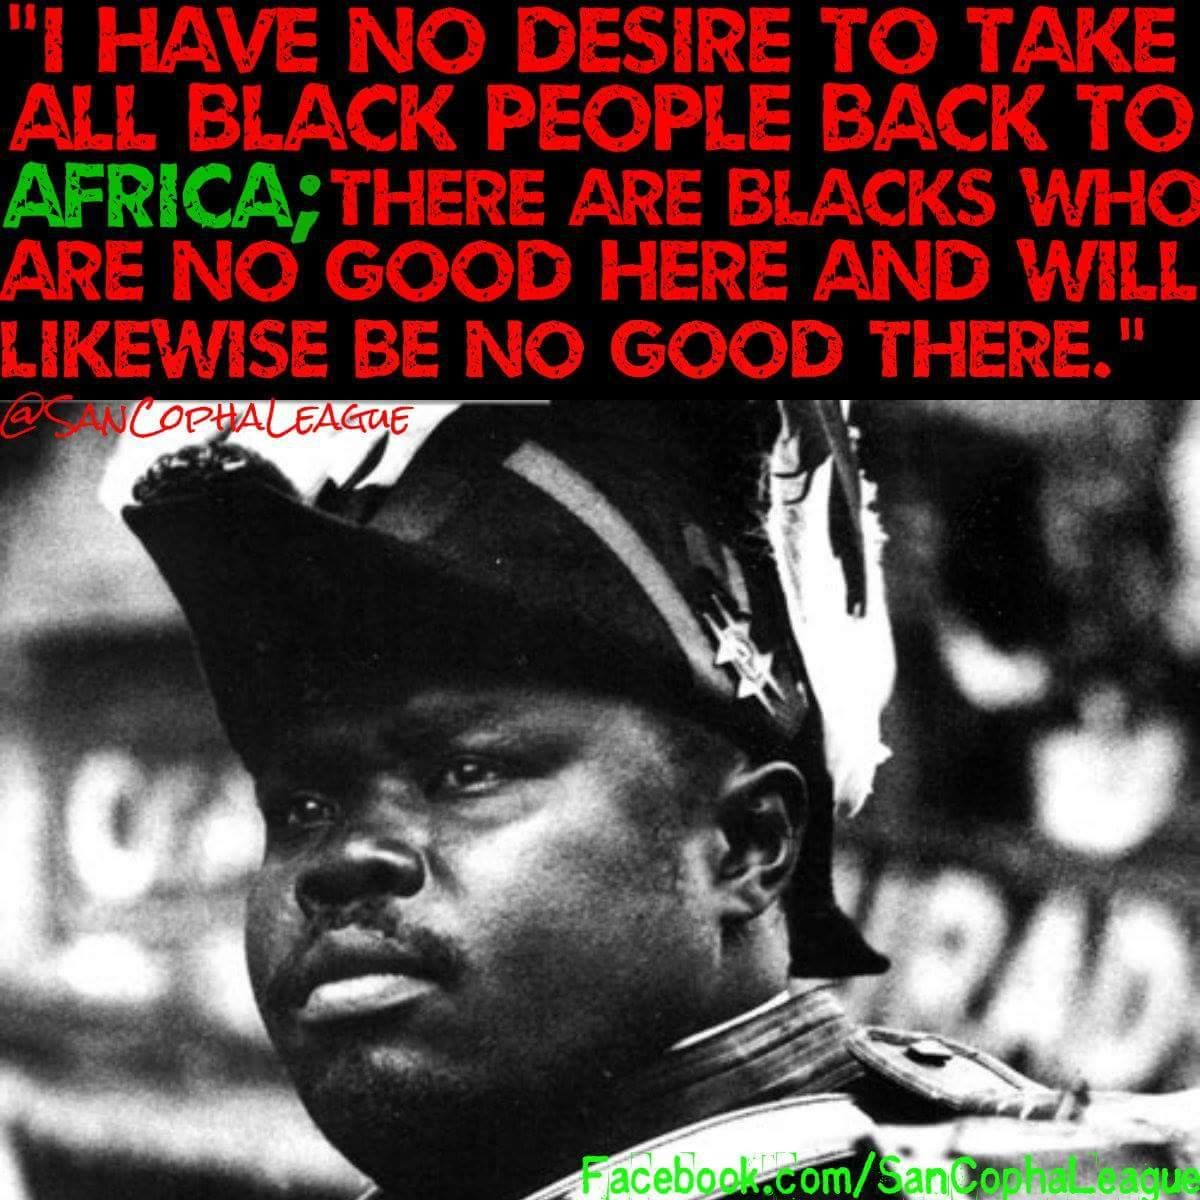 marcus garvey black history black child movies marcus garvey not all blacks quote